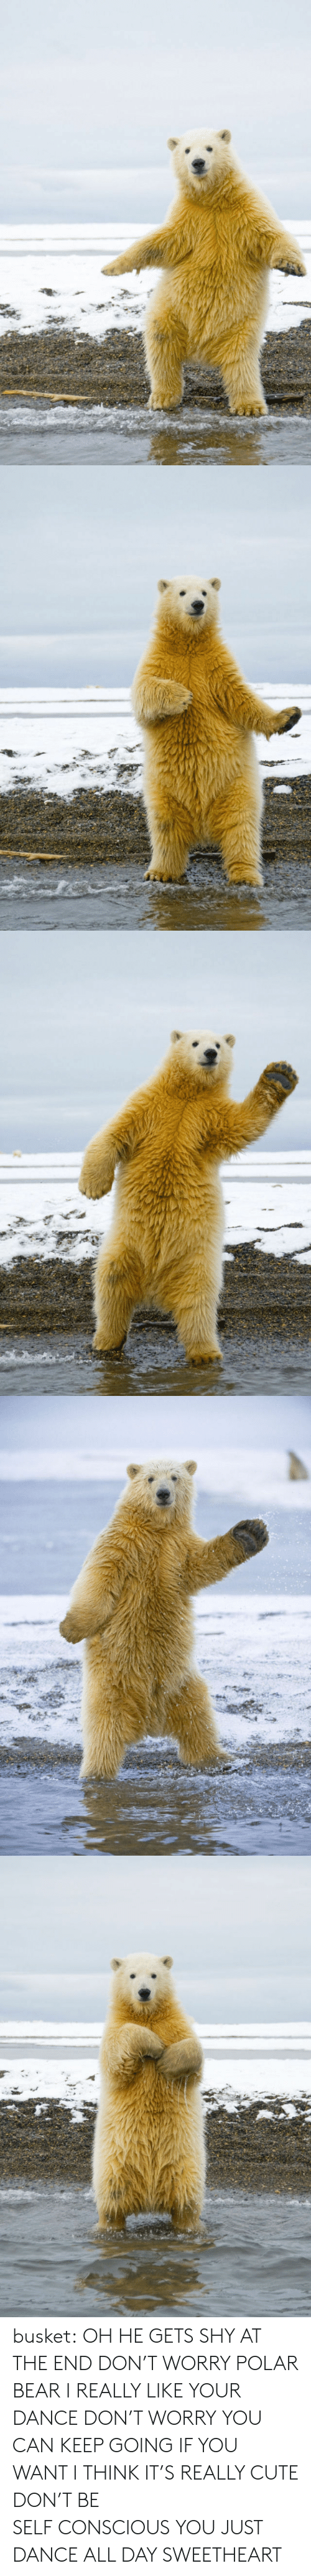 just dance: busket: OH HE GETS SHY AT THE END DON'T WORRY POLAR BEAR I REALLY LIKE YOUR DANCE DON'T WORRY YOU CAN KEEP GOING IF YOU WANT I THINK IT'S REALLY CUTE DON'T BE SELF CONSCIOUS YOU JUST DANCE ALL DAY SWEETHEART